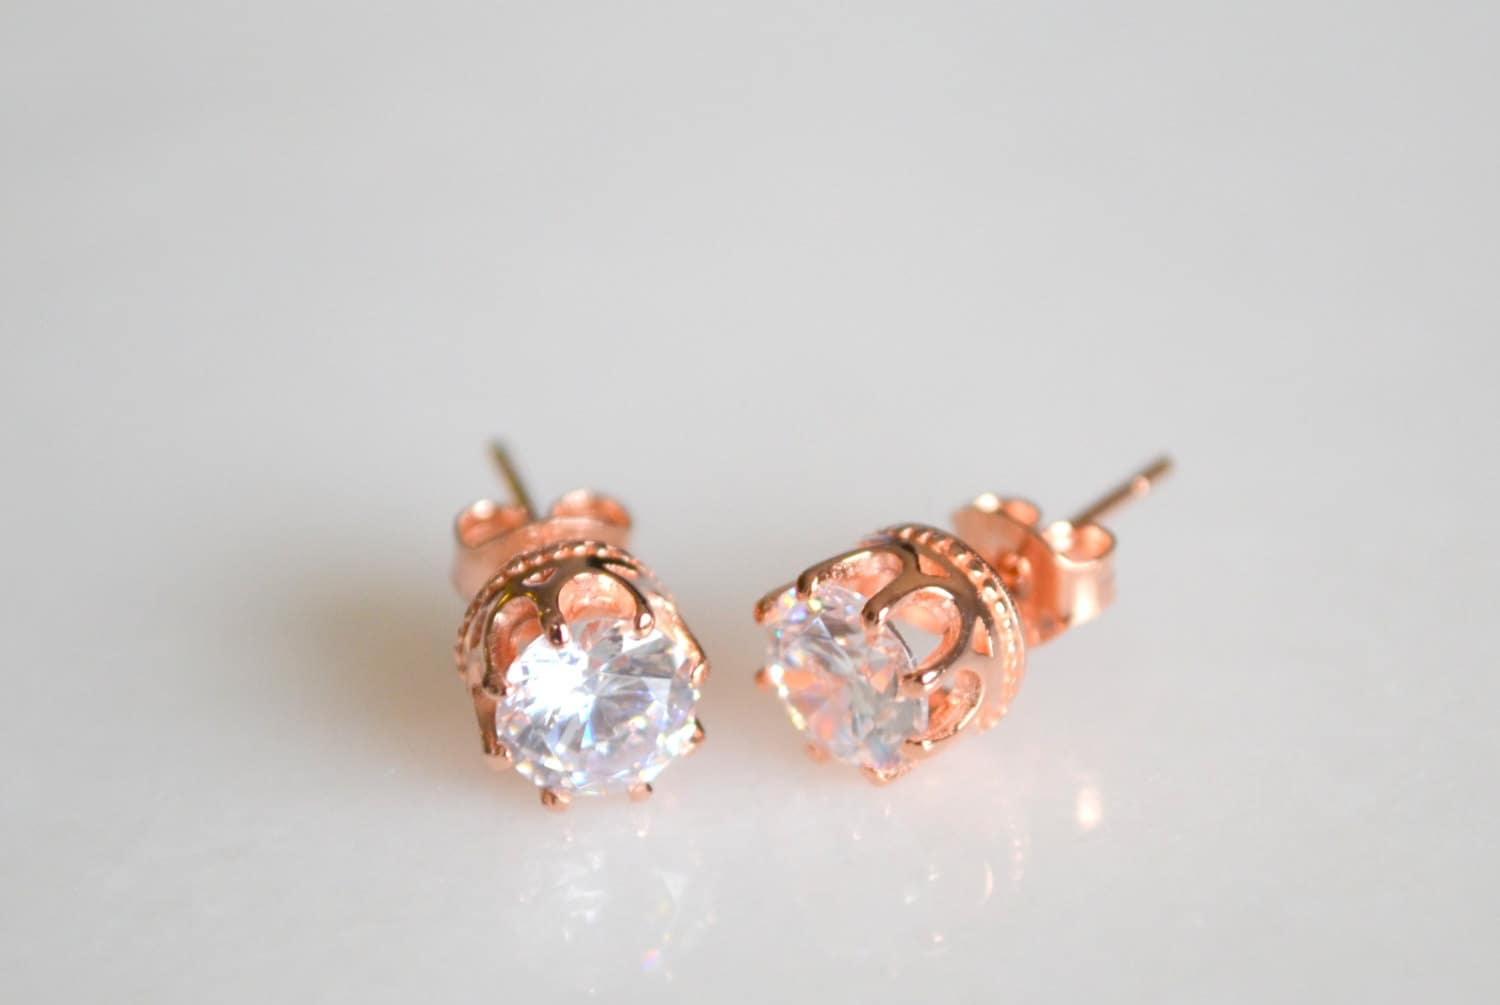 zircon copper cz jewelry silver material bling hip hop stud round tray earring out crown aaa plated earrings iced products